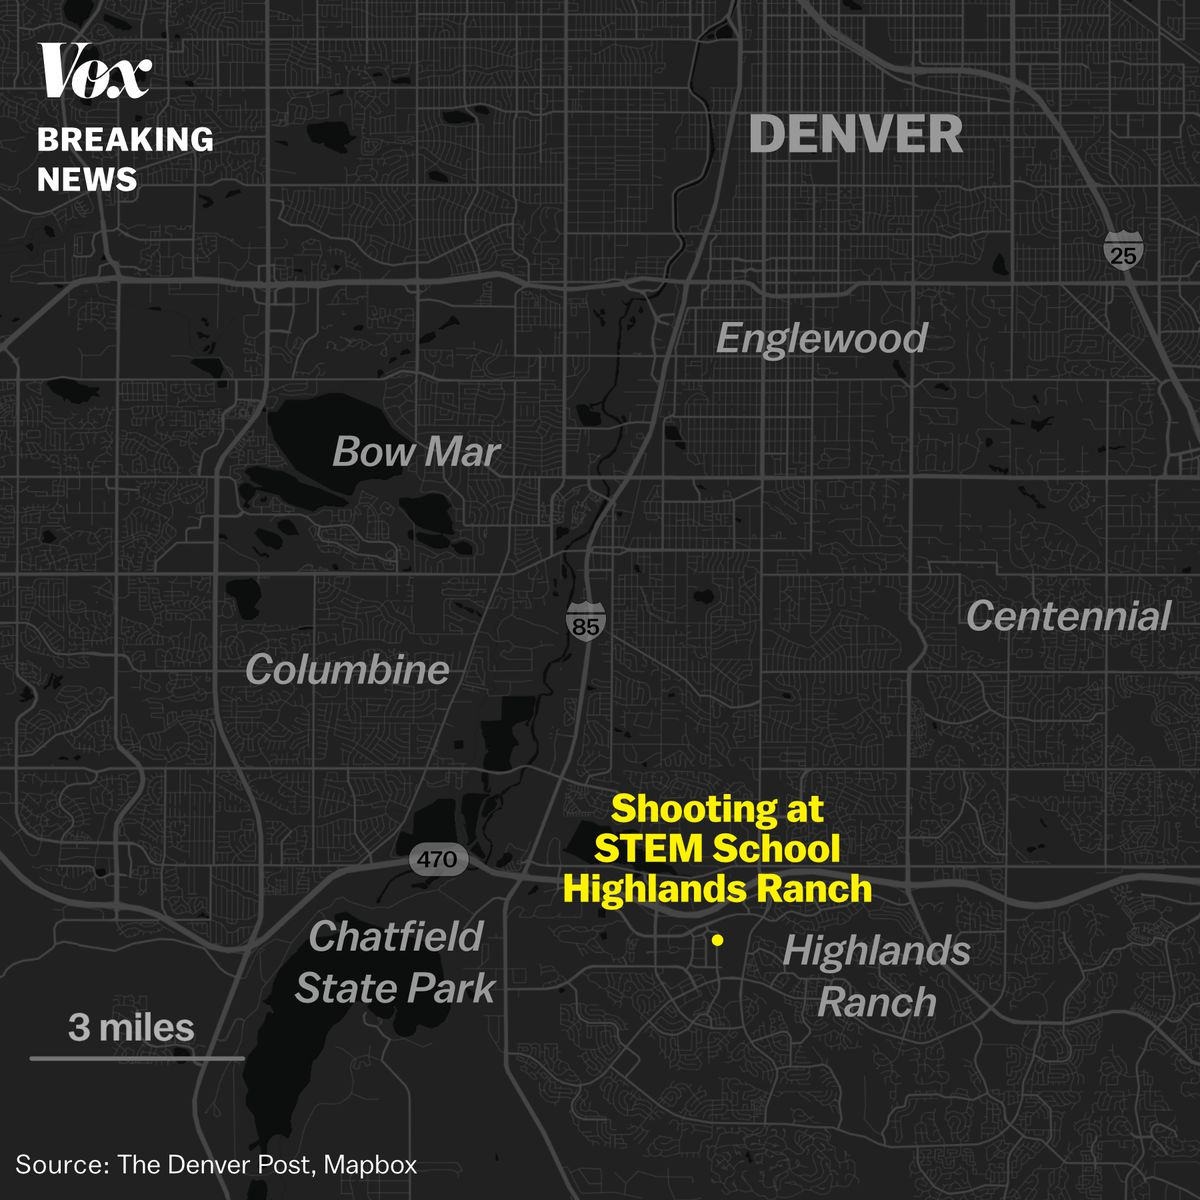 Stem School Virginia: Colorado Shooting At STEM School Highlands Ranch: What We